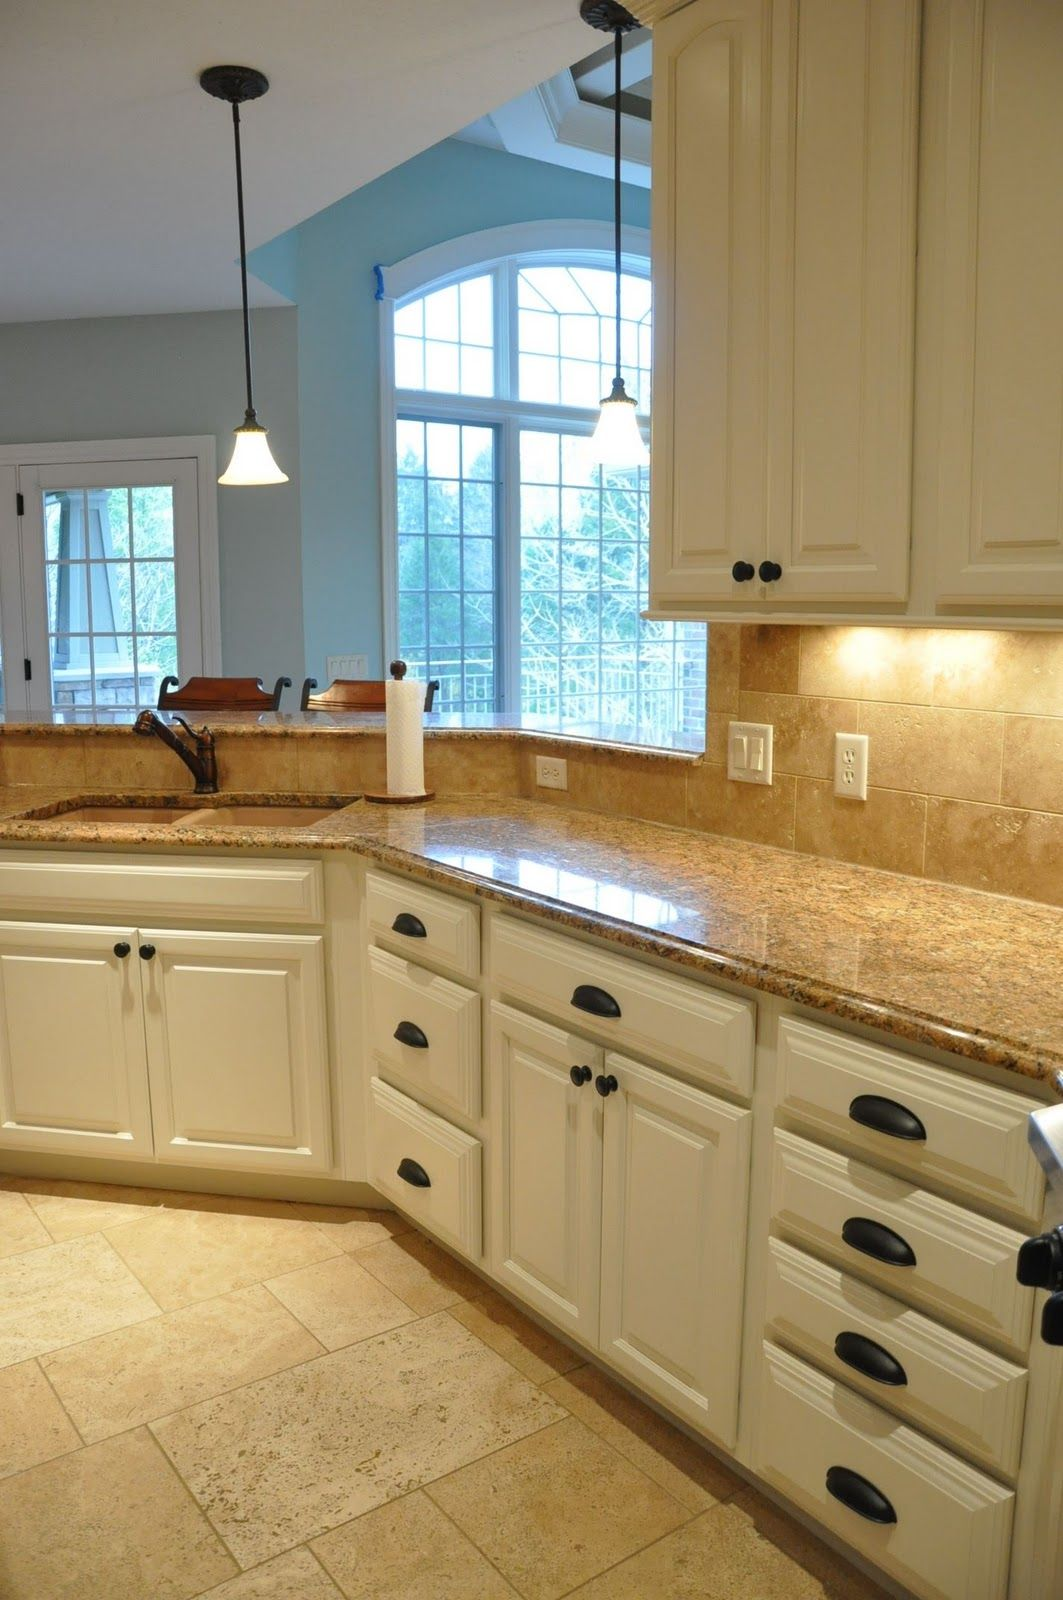 Painting kitchen cabinets before and after for Painting kitchen countertops before and after